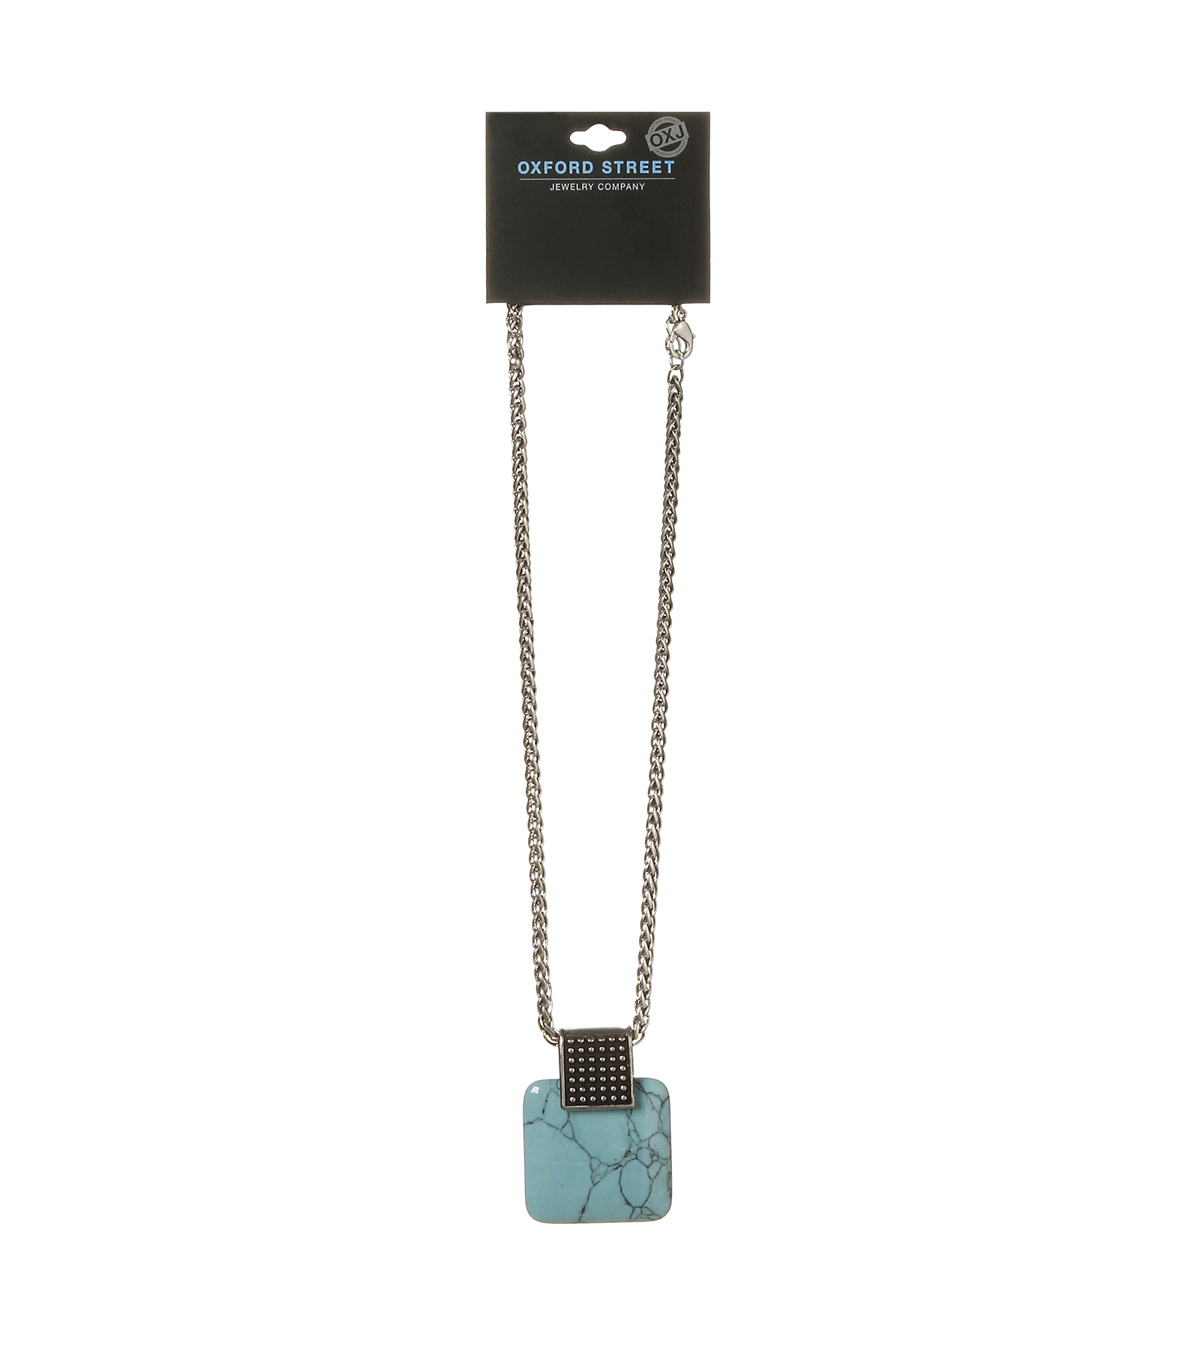 Oxford Street Jewelry Co. Square Turquoise Stone & Silver Necklace